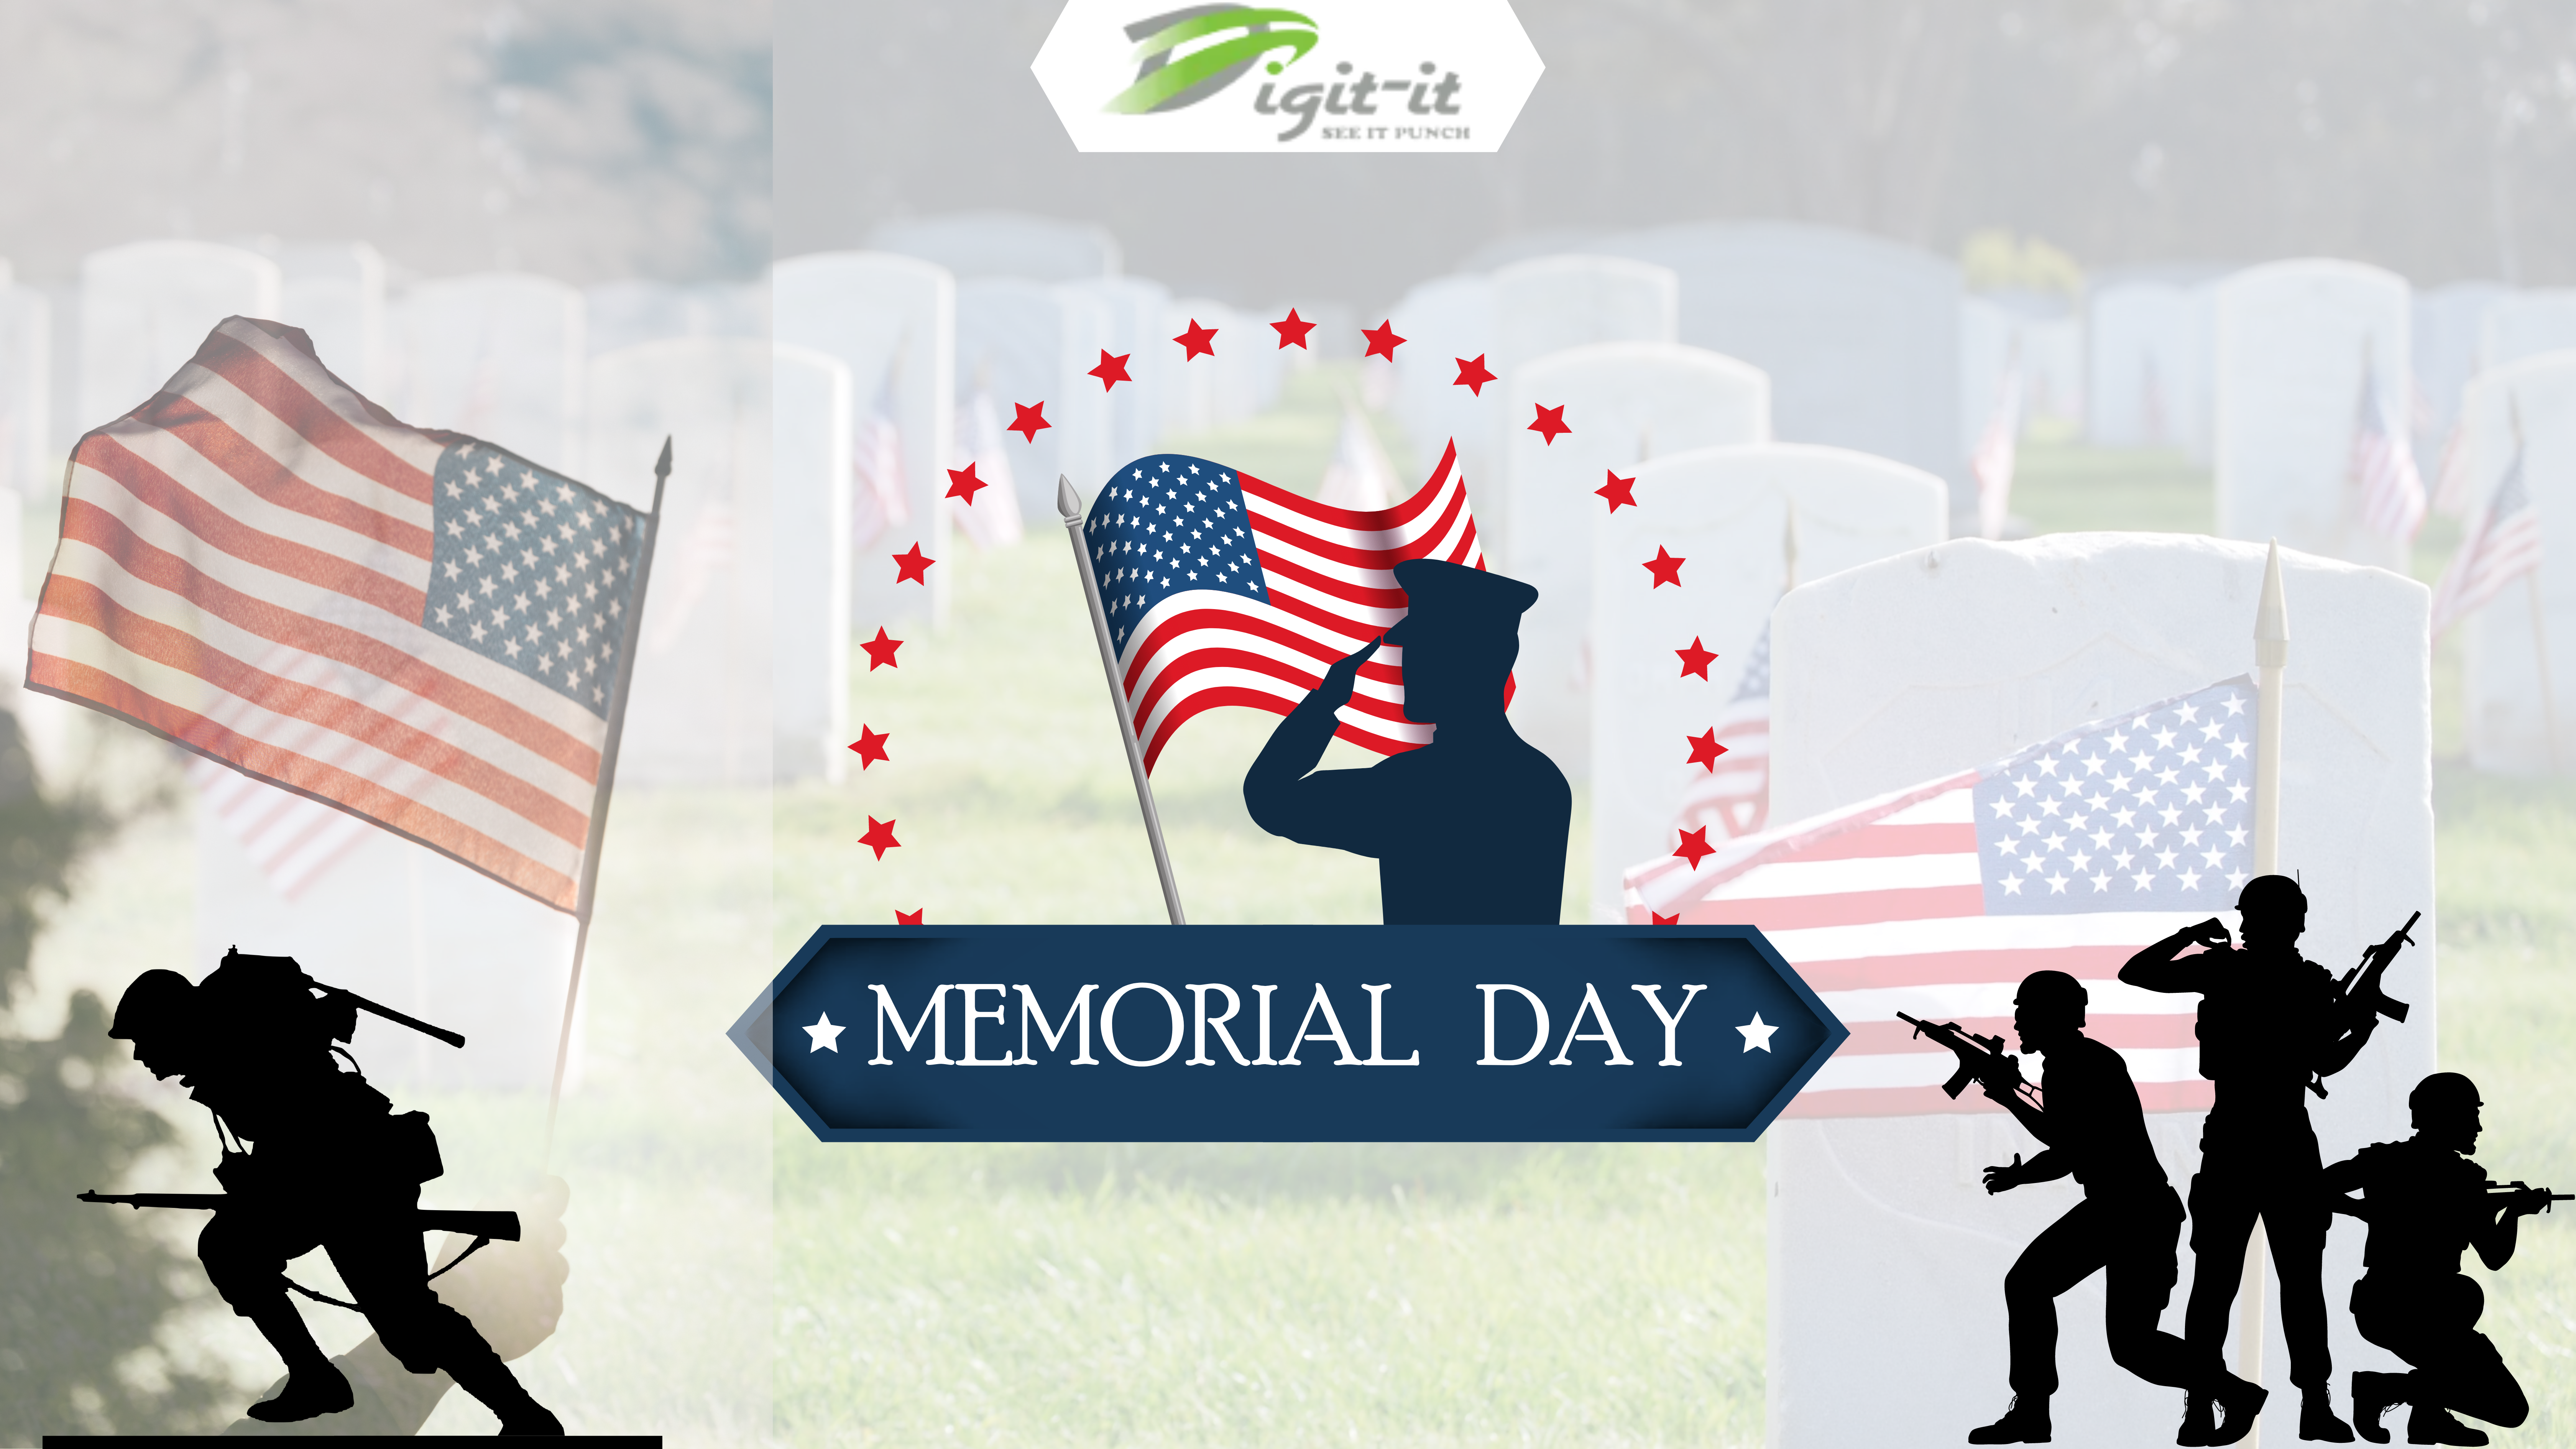 Embroidery Design For Memorial Day